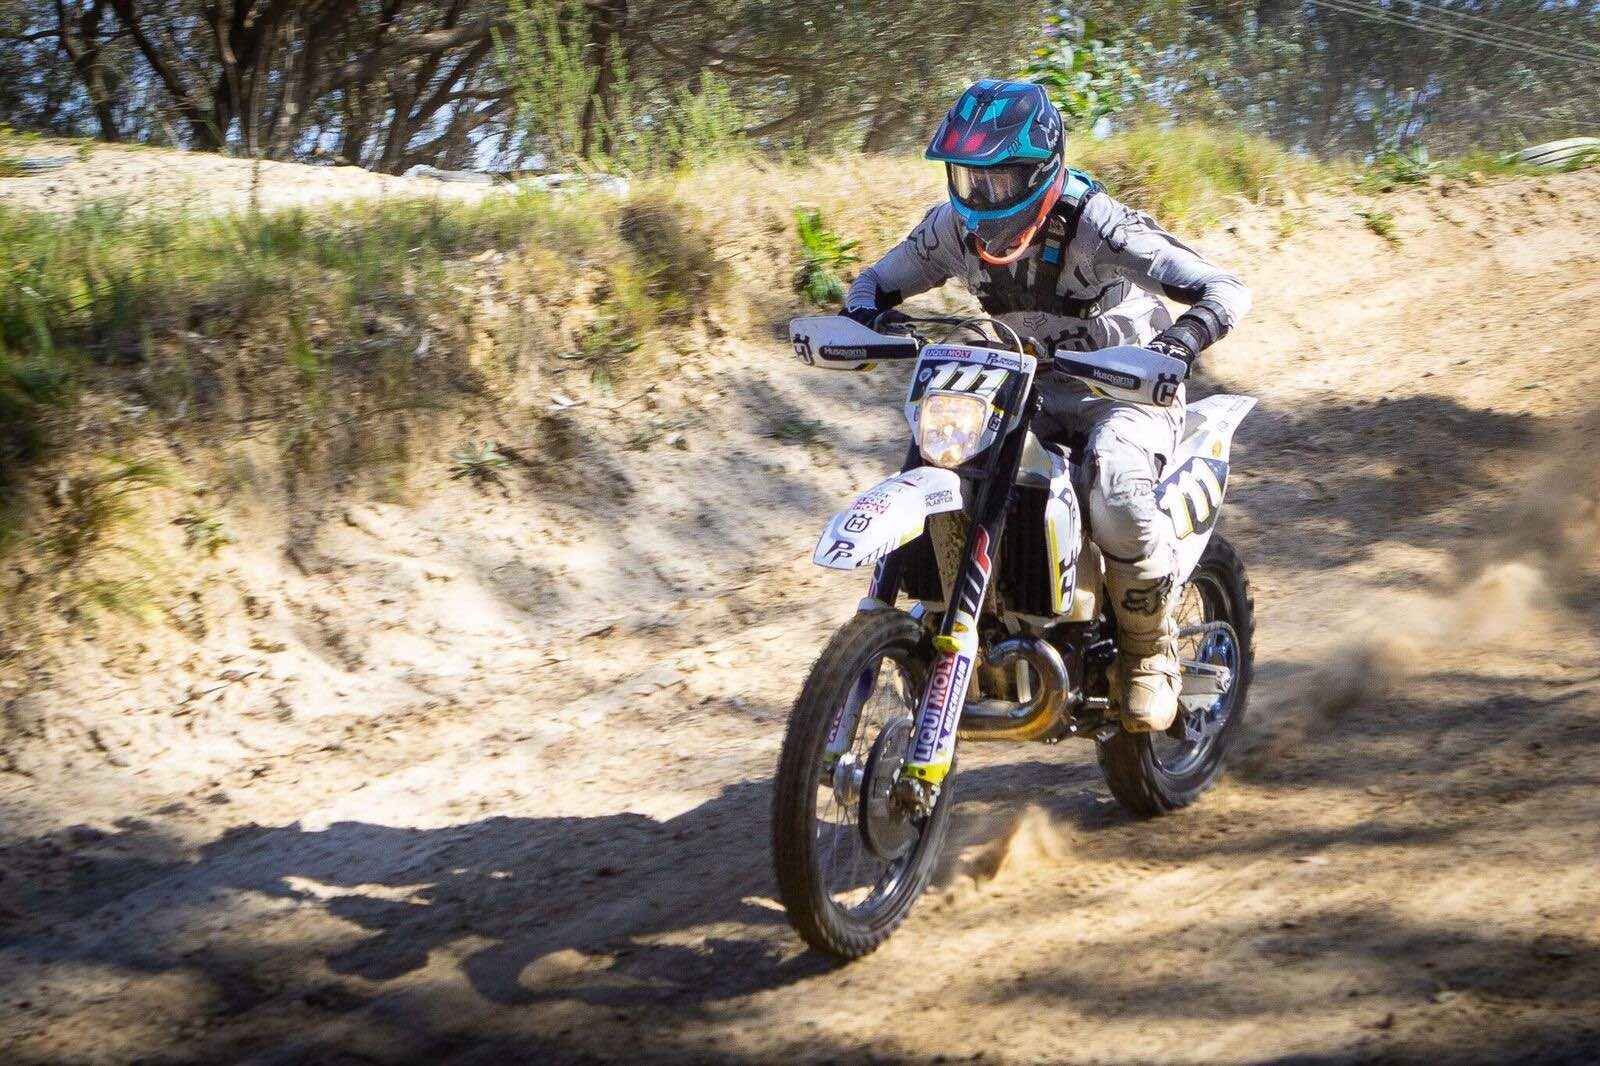 Making a comeback to racing after a horrific injury,Brett Swanepoel is back up to speed having just finished off the season by taking 3rd overall in the 2019SA National Enduro Championship.